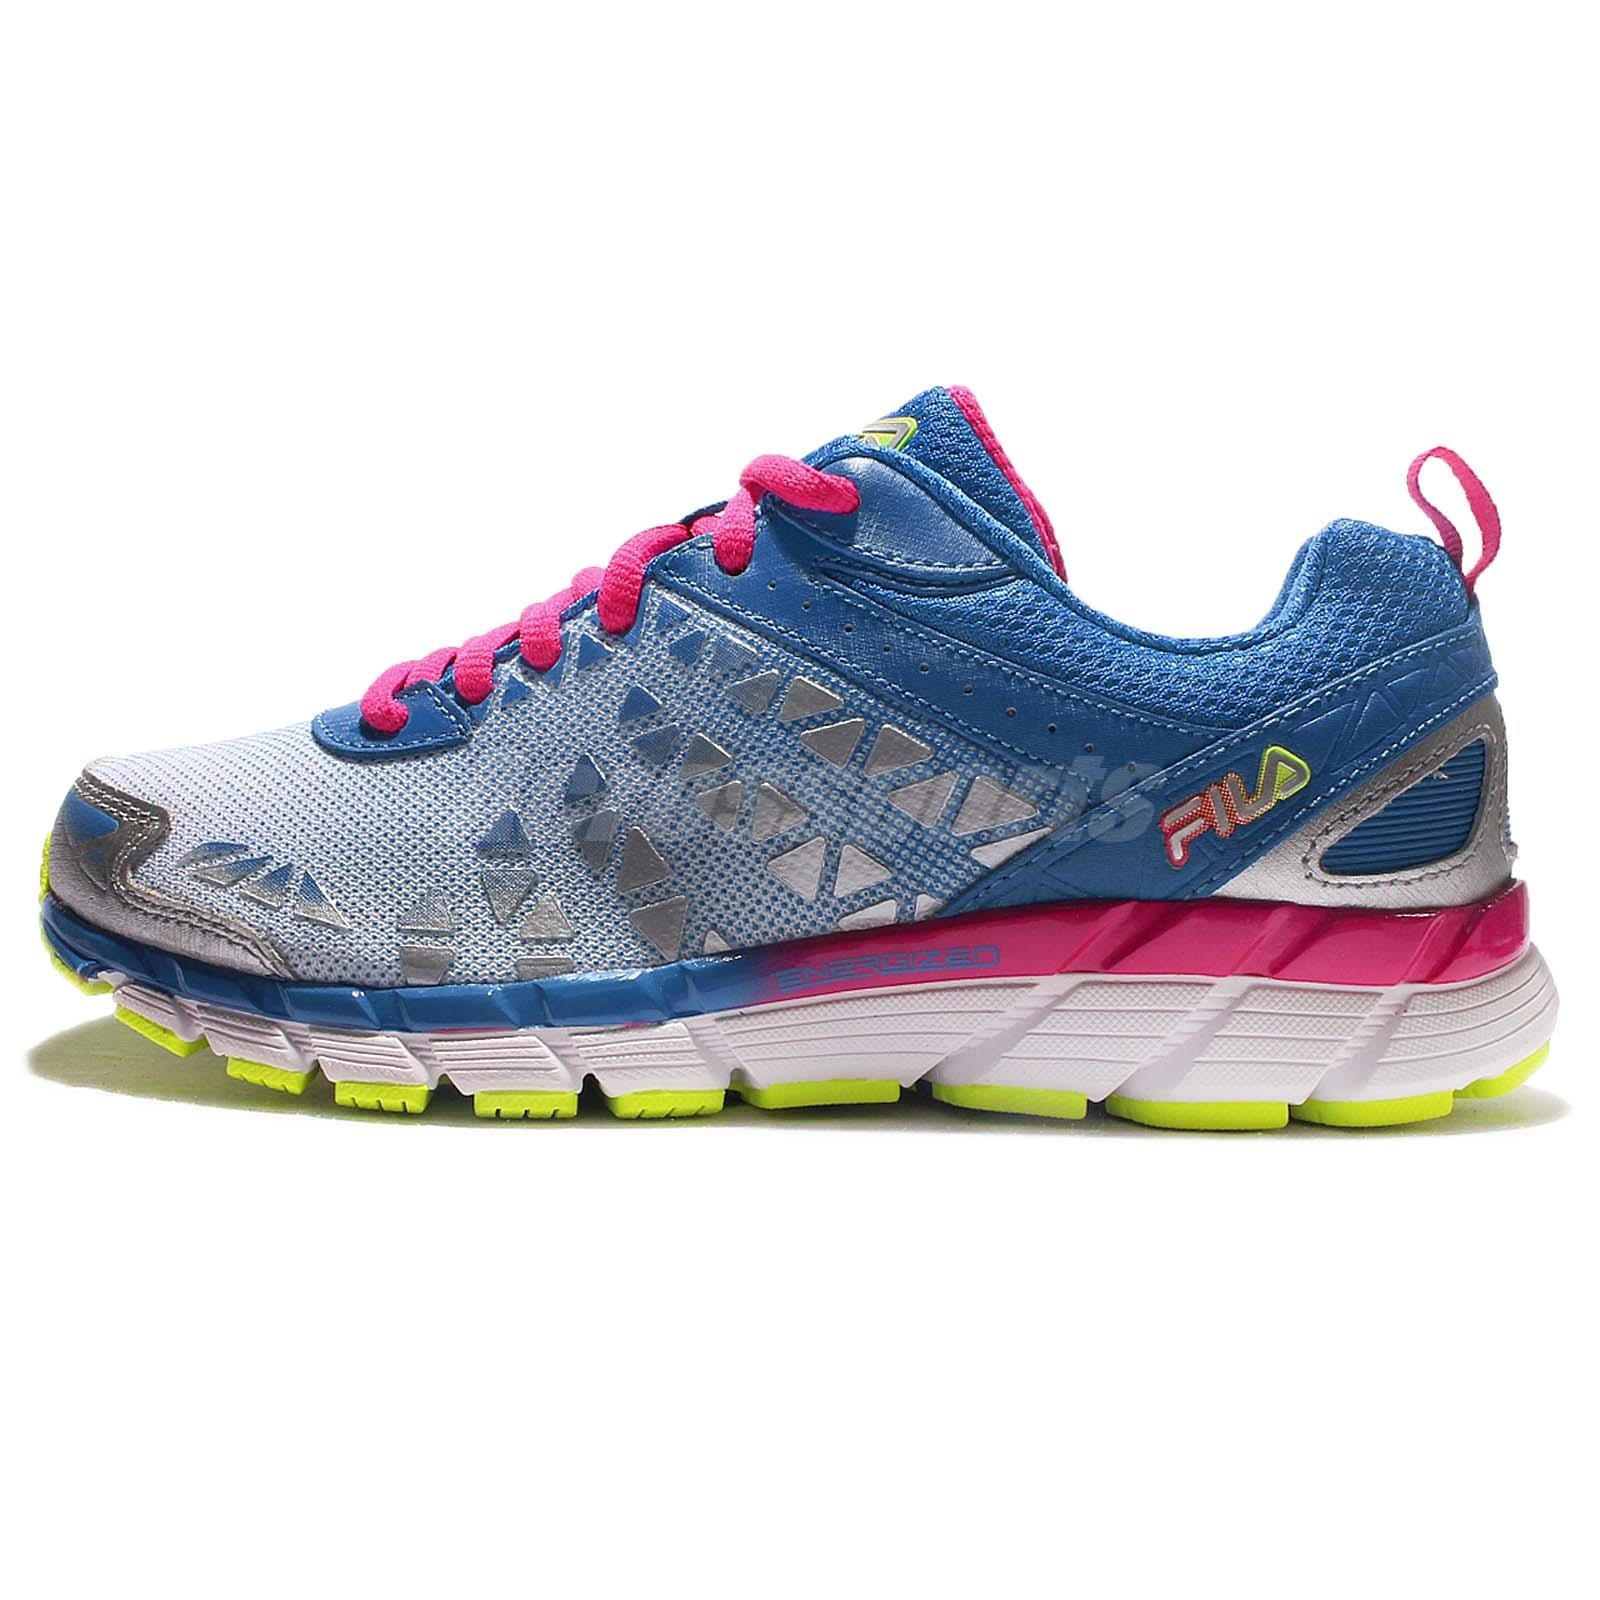 fila j530q blue pink silver womens running shoes sneakers